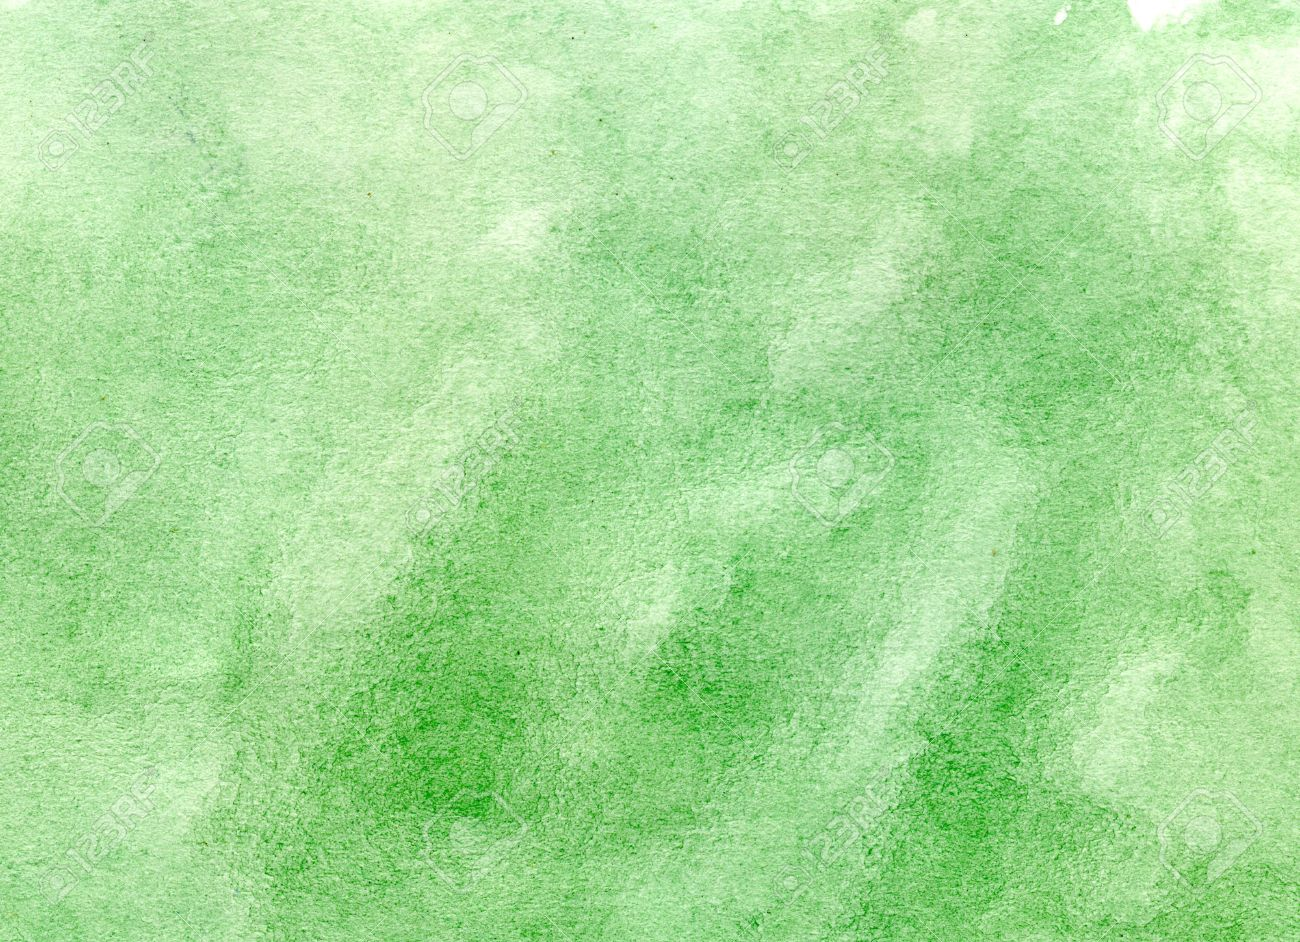 Green Watercolor Wash Background Stock Photo, Picture And Royalty ...